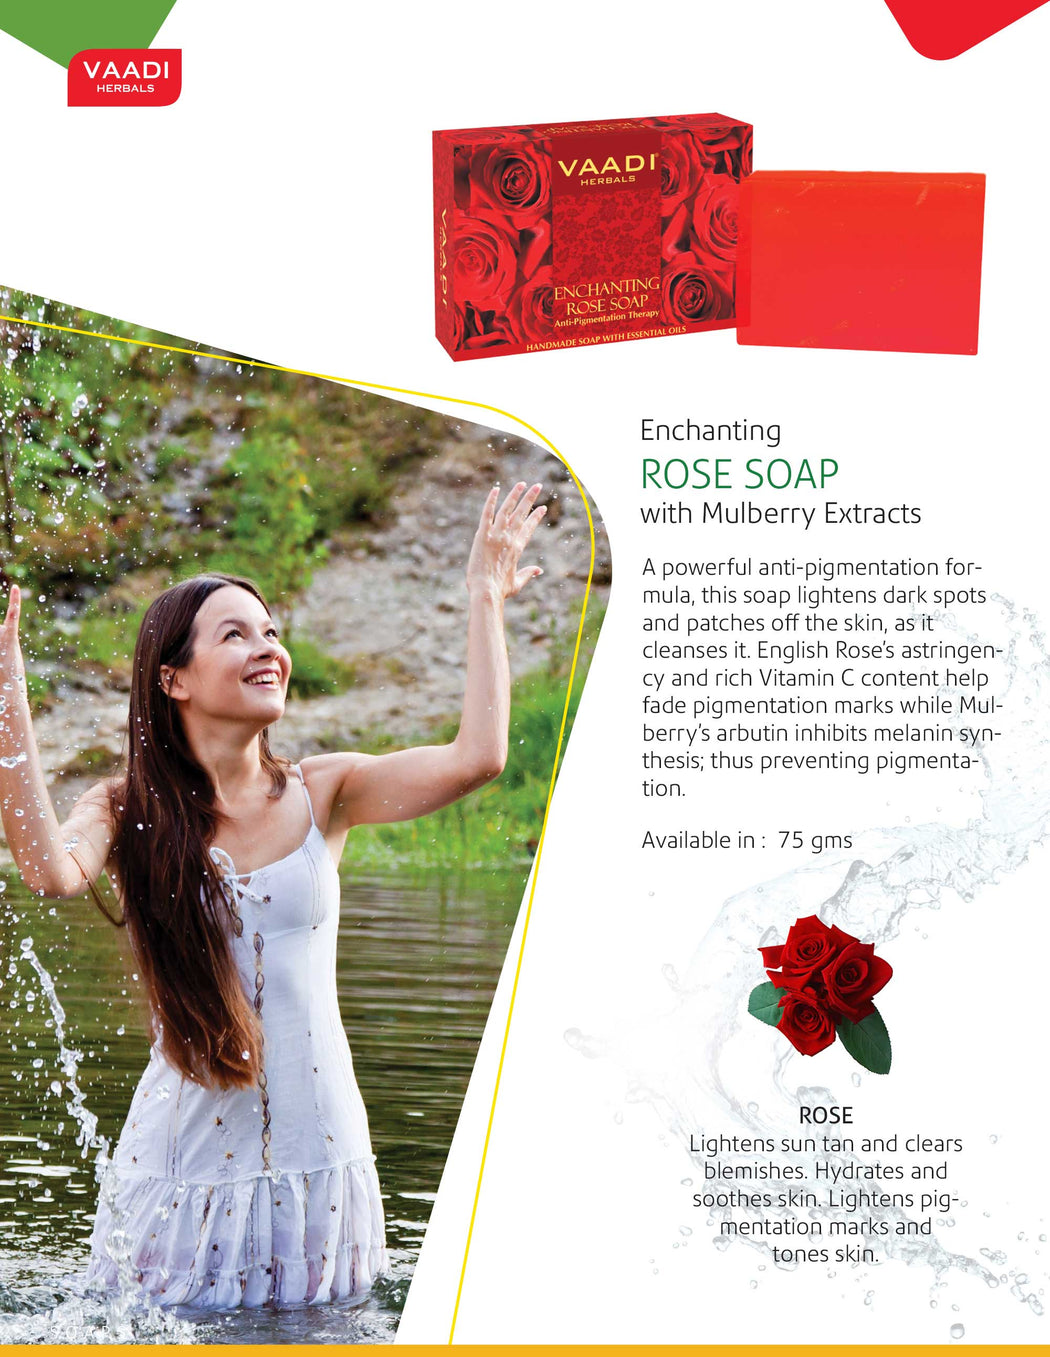 Enchanting Organic Rose Soap with Mulberry Extract - Anti Pigmentation Therapy (75 gms/2.7 oz)